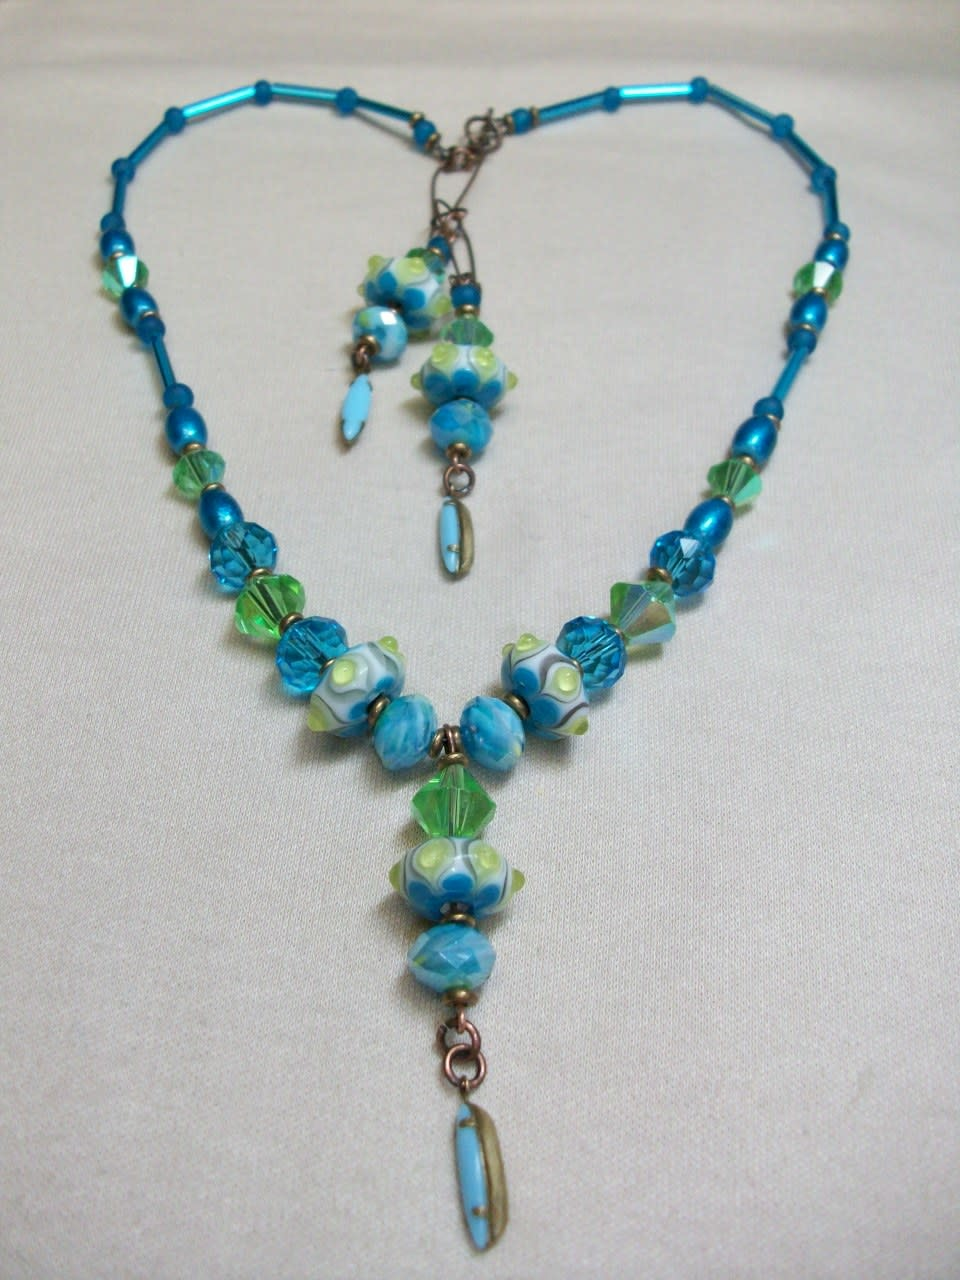 Sharon B's Originals 3 Lime & Aqua Beads w/ Vintage Aqua Drops Necklace & Earring Set